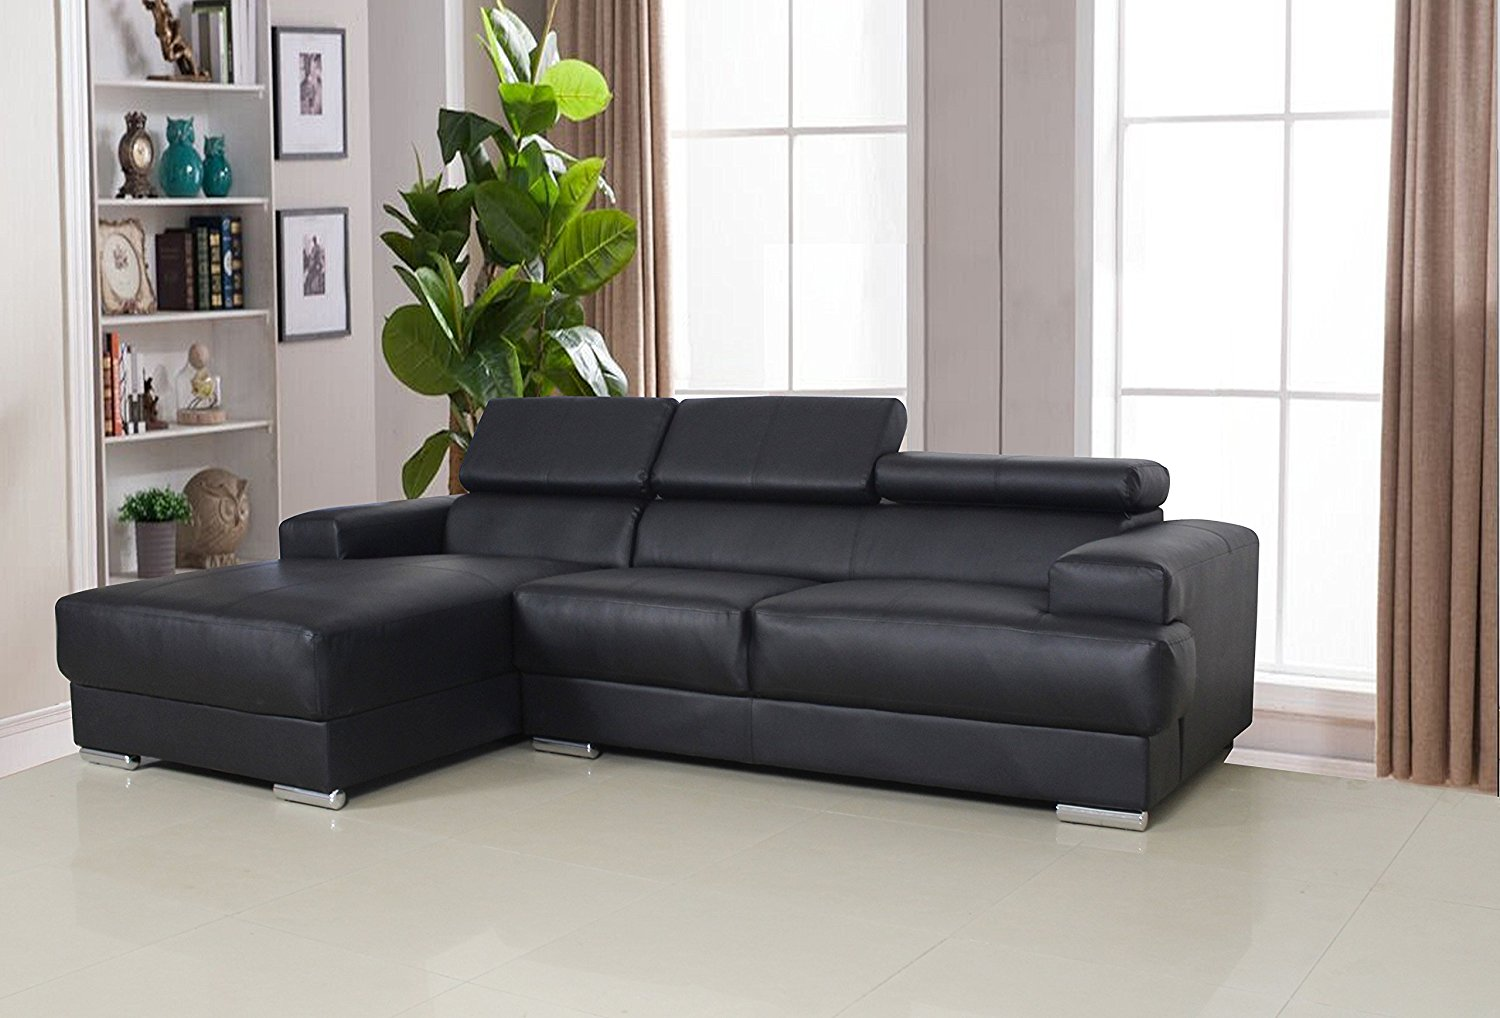 Us Pride Furniture Gabriel Contemporary Bonded Leather 2 Pc Left Facing Sectional Sofa Set Black S0063 Walmart Com